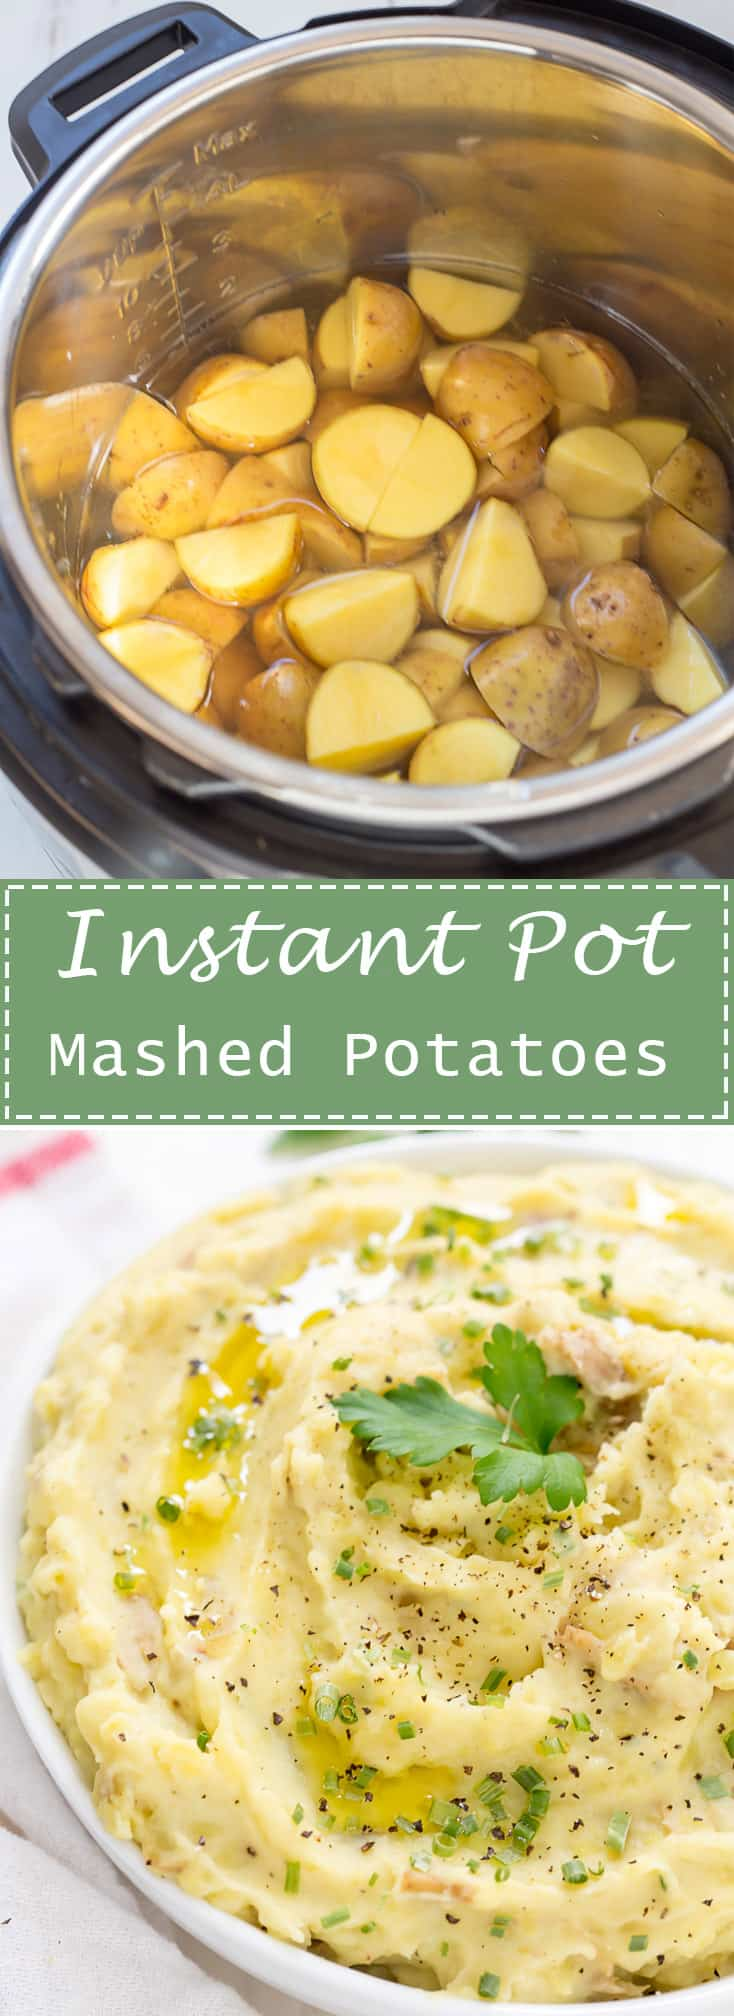 Instant Pot Mashed Potatoes are a time saver and made in about 8 minutes! They come out perfectly creamy, light, and fluffy every single time!